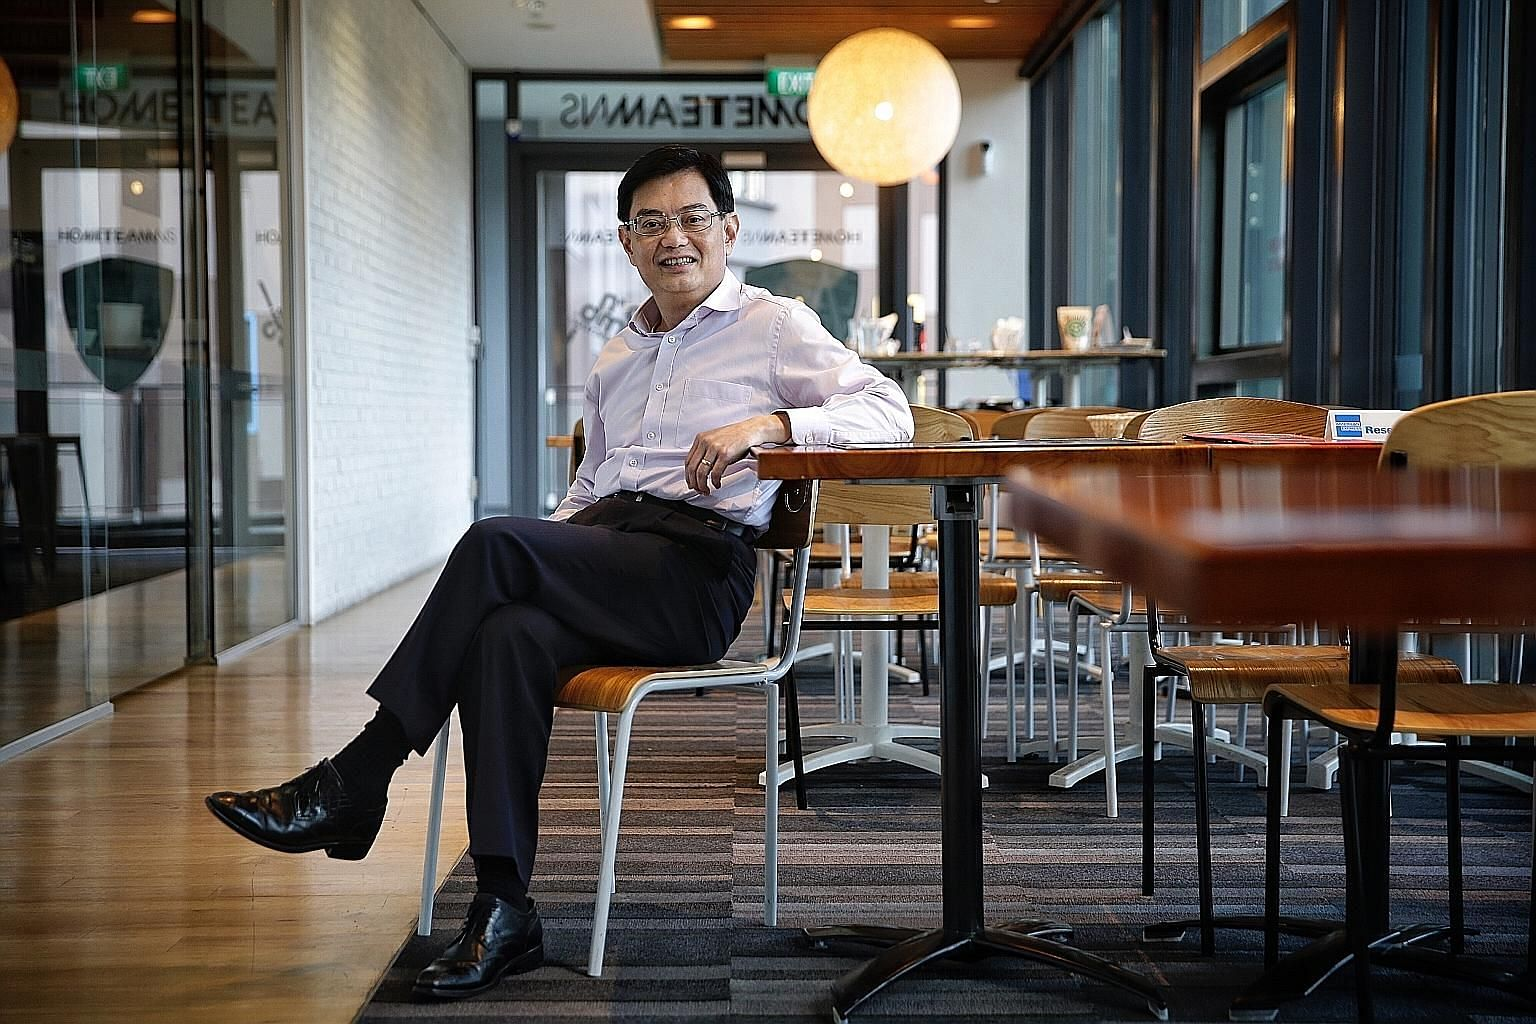 Finance Minister Heng Swee Keat in a cafe at Our Tampines Hub, Singapore's first integrated community and lifestyle destination. The Hub tapped residents' views to re-imagine how space can be used, with facilities grouped together to make them more c